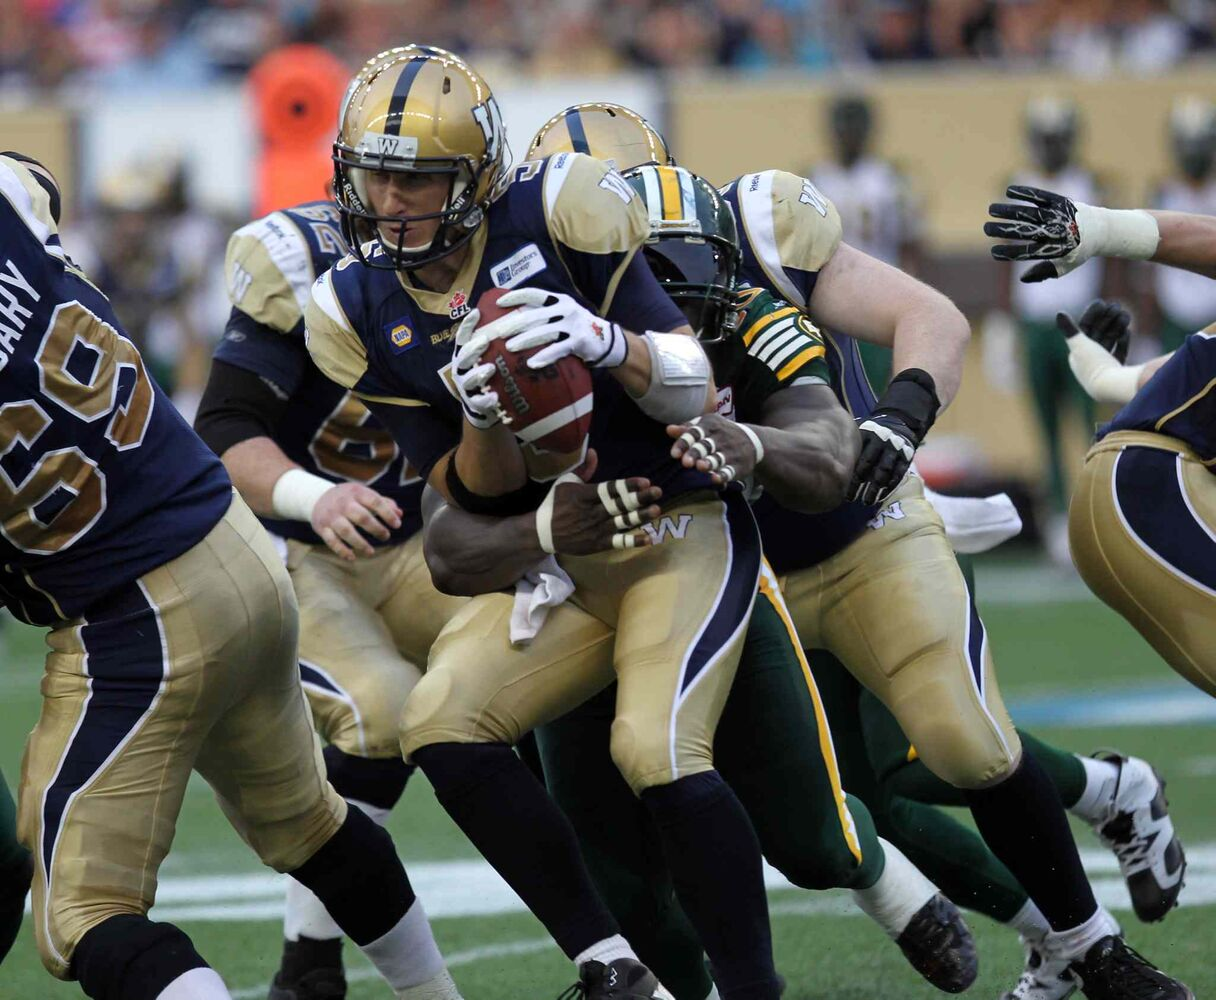 Winnipeg Blue Bombers' quarterback Drew Willy gets wrapped up in the arms of Edmonton Eskimos' #90 Almondo Sewell in the second quarter of Thursday's game. (Phil Hossack / Winnipeg Free Press)